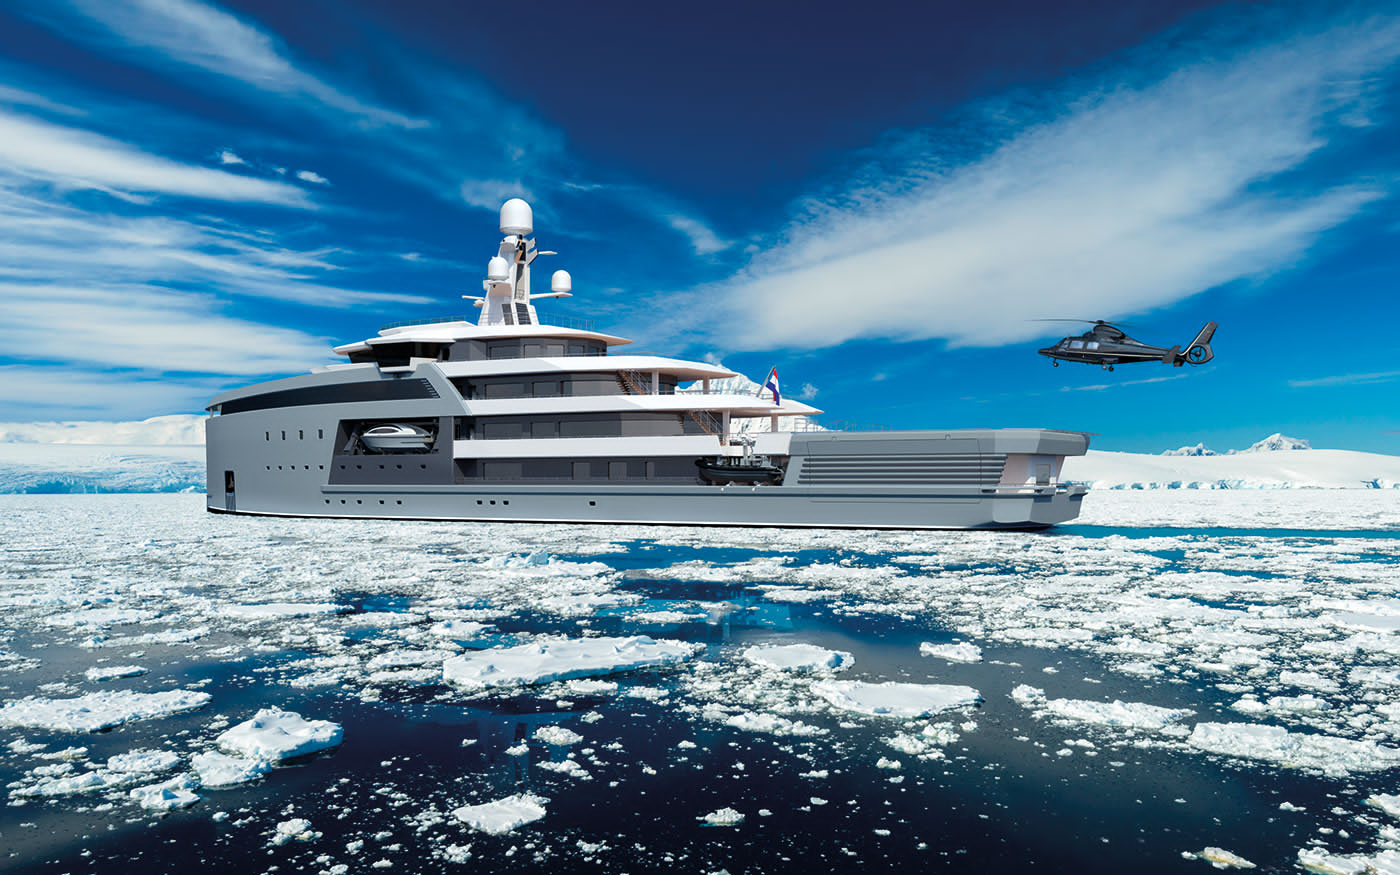 helicopter landing on SeaXplorer expedition superyacht in Antarctica